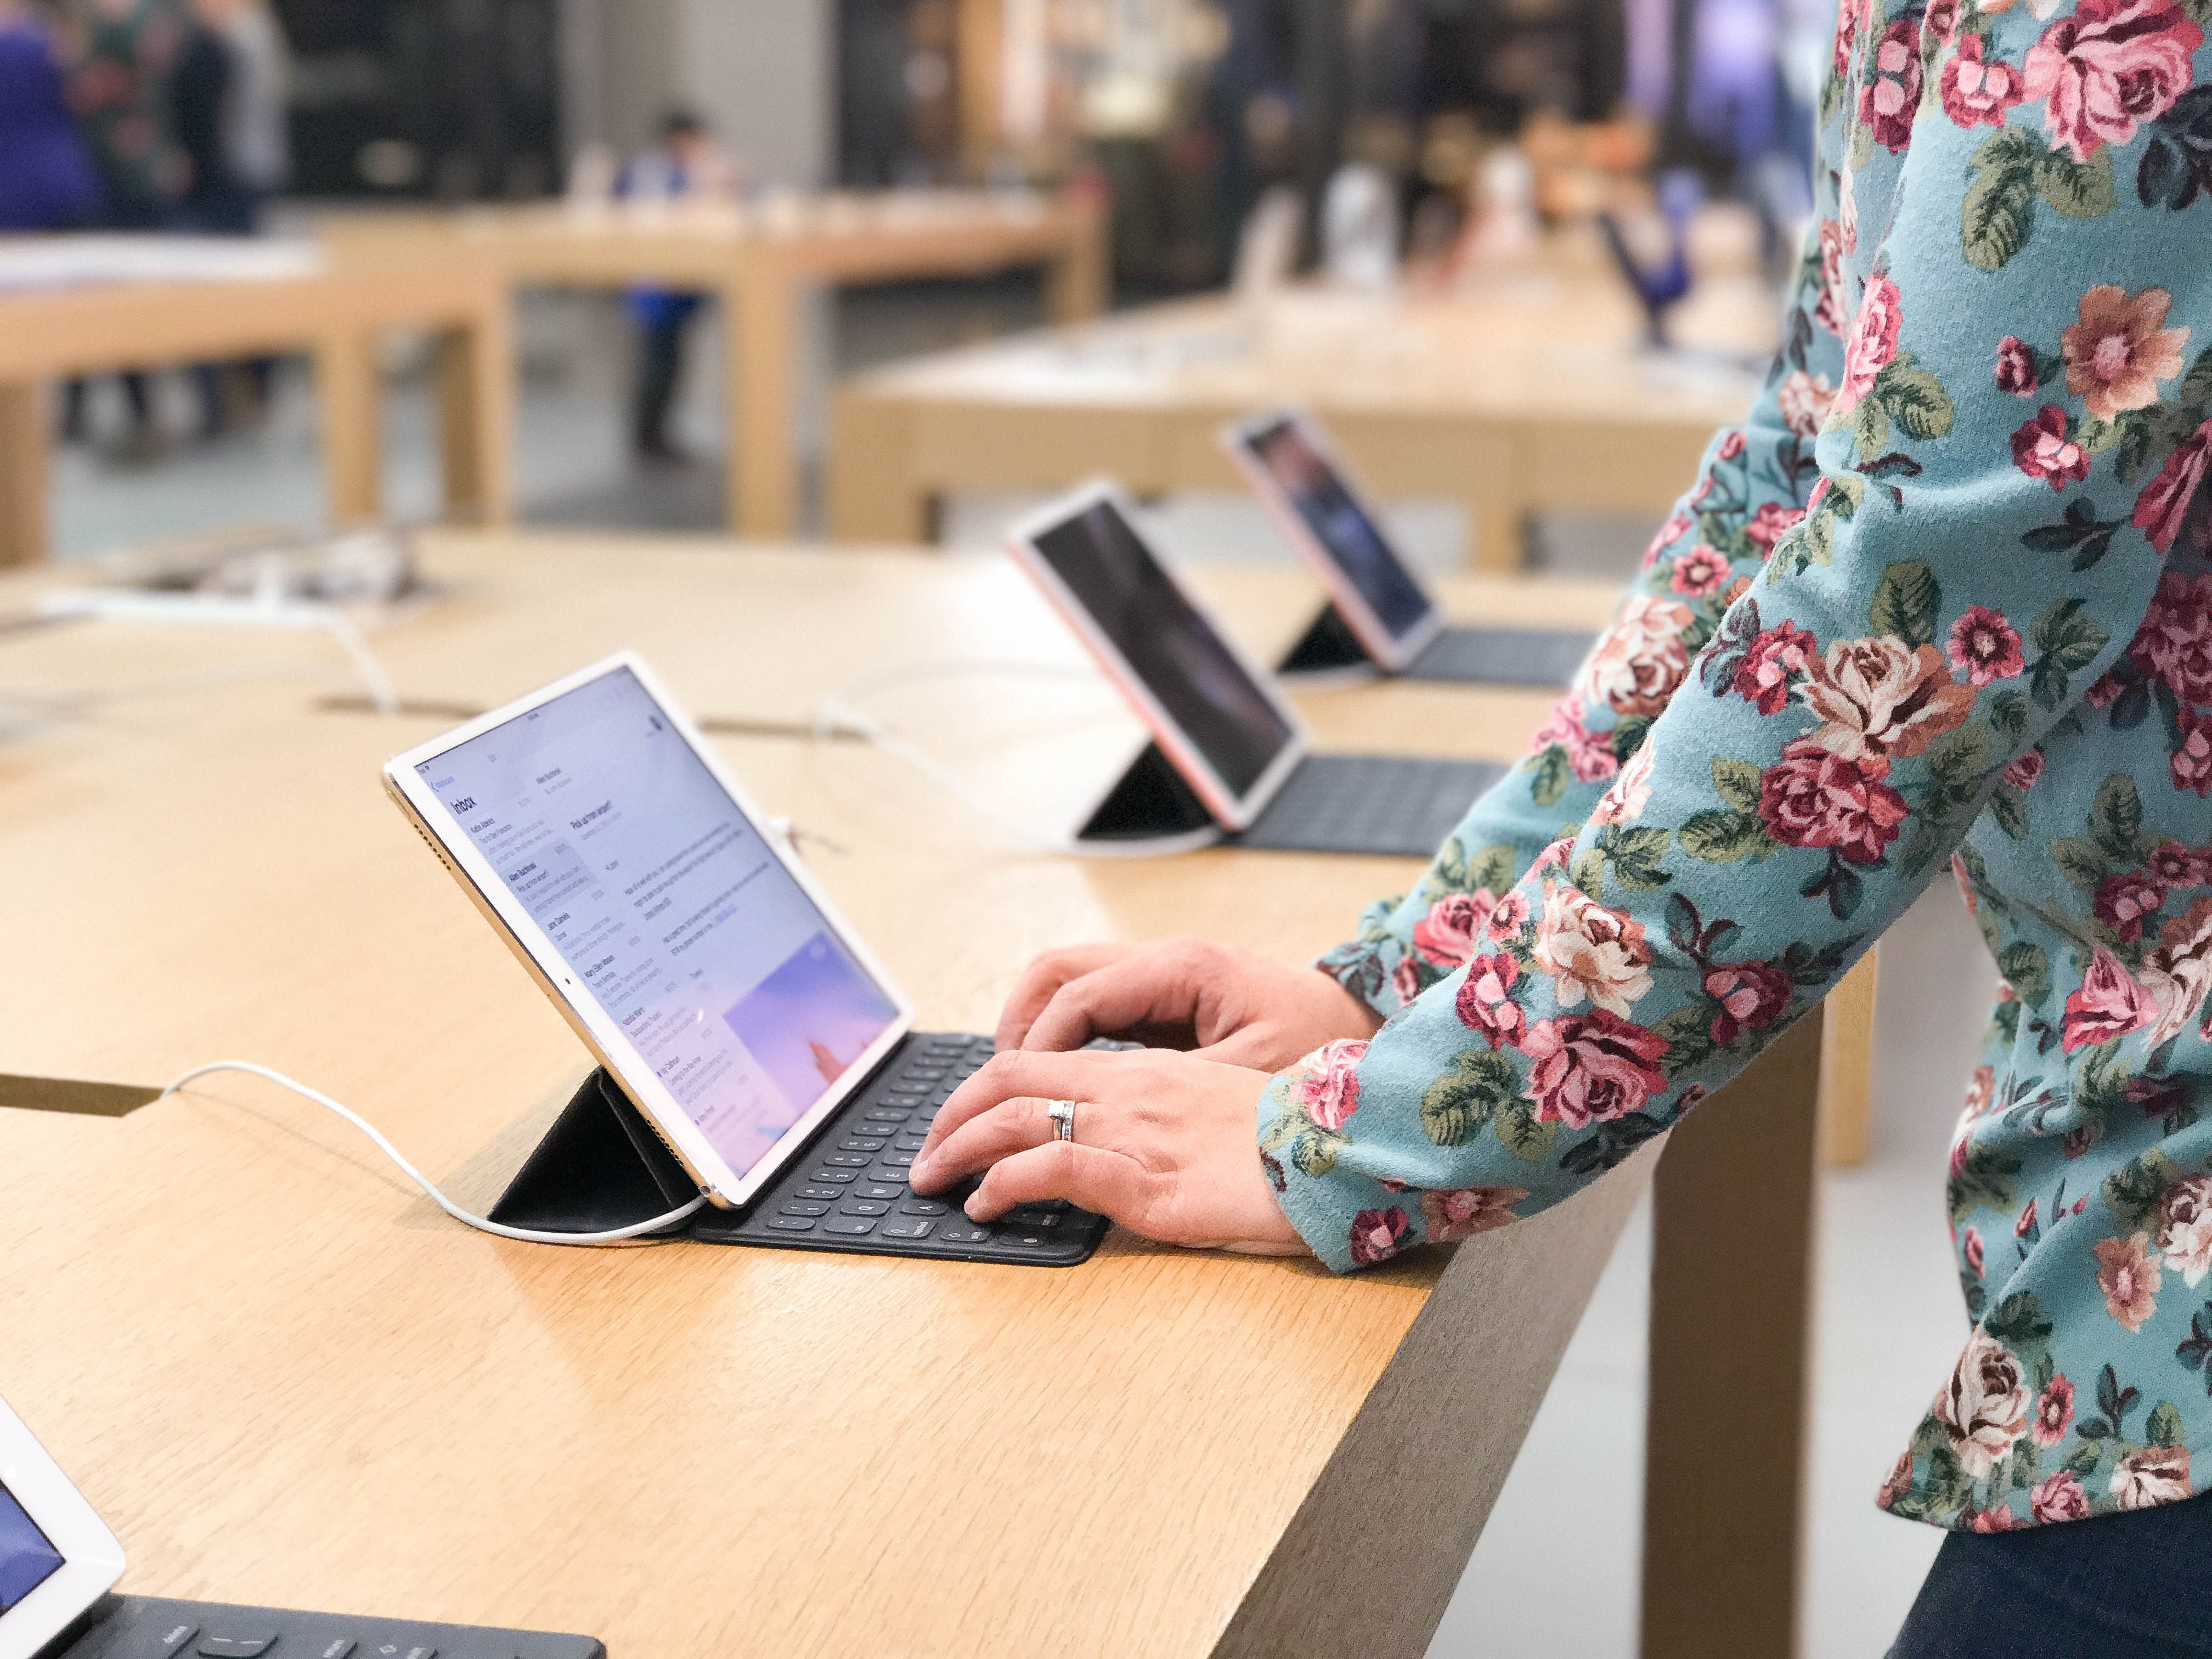 10 Little-Known Ways to Save on Apple Products - The Krazy